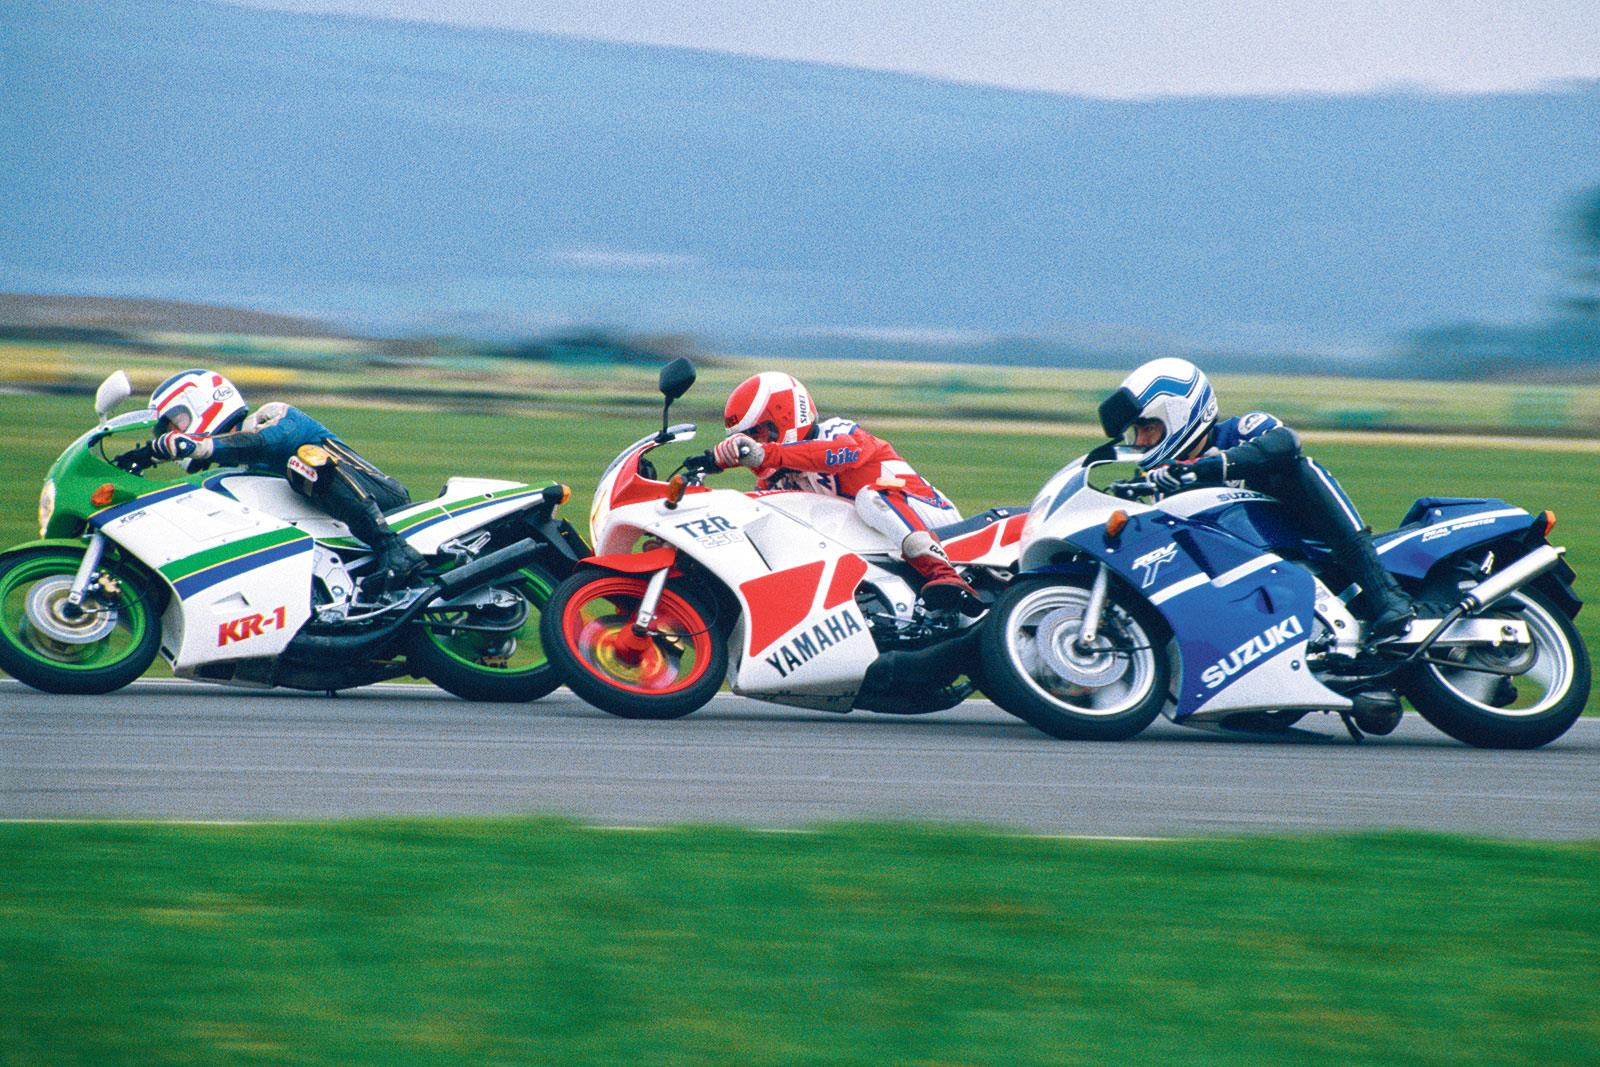 Whatever happened to The 250 generation?